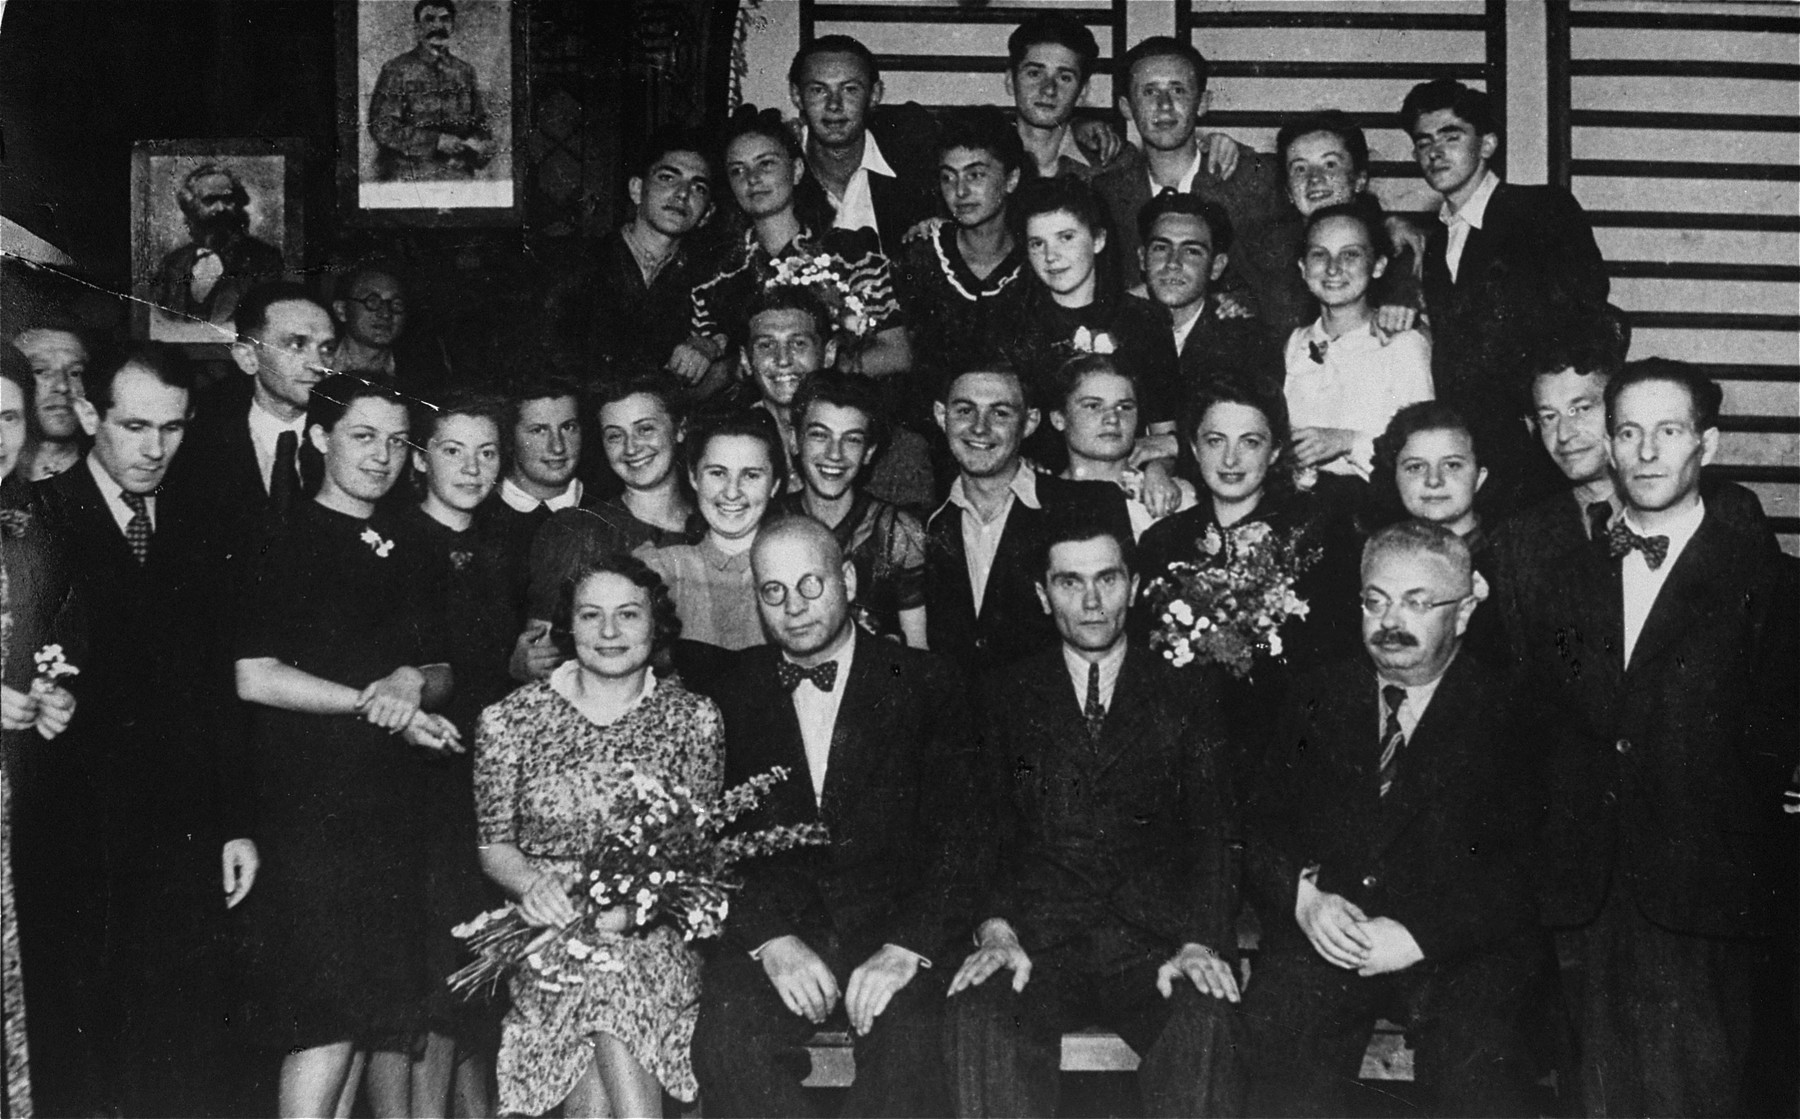 Group portrait of the faculty and graduating class of the Jewish private high school in Drohobycz.  Among those pictured are Bruno Schulz, the Polish author and painter (standing at the left looking down).  Also pictured seated (far left) Mrs. Alter and Jakob Blatt, the principal (far right).  Standing second row, left to right are Bruno Schultz, Mr. Ornstein, unknown, Helena Beck, unknown, unknown, unknown, Tusia Schenkelbach, Ozia Stranzer, Olga Salata, Mrs. Rosberger (nee Harz), Sima Iwaszczenko, Nemlich, Adolph Hirschberg.  Third row: Stempler (?), Ida Hennenfeld, unknown, Rysia Resnick, unknown, and  Lola Oppenheim.  Top row:  Kaiko Kupferberg,  Imek Weiss, Bloch, unknown and a Jewish refugee from Vienna.  Others pictured are Rudek Lanc, and Fredek Koch.